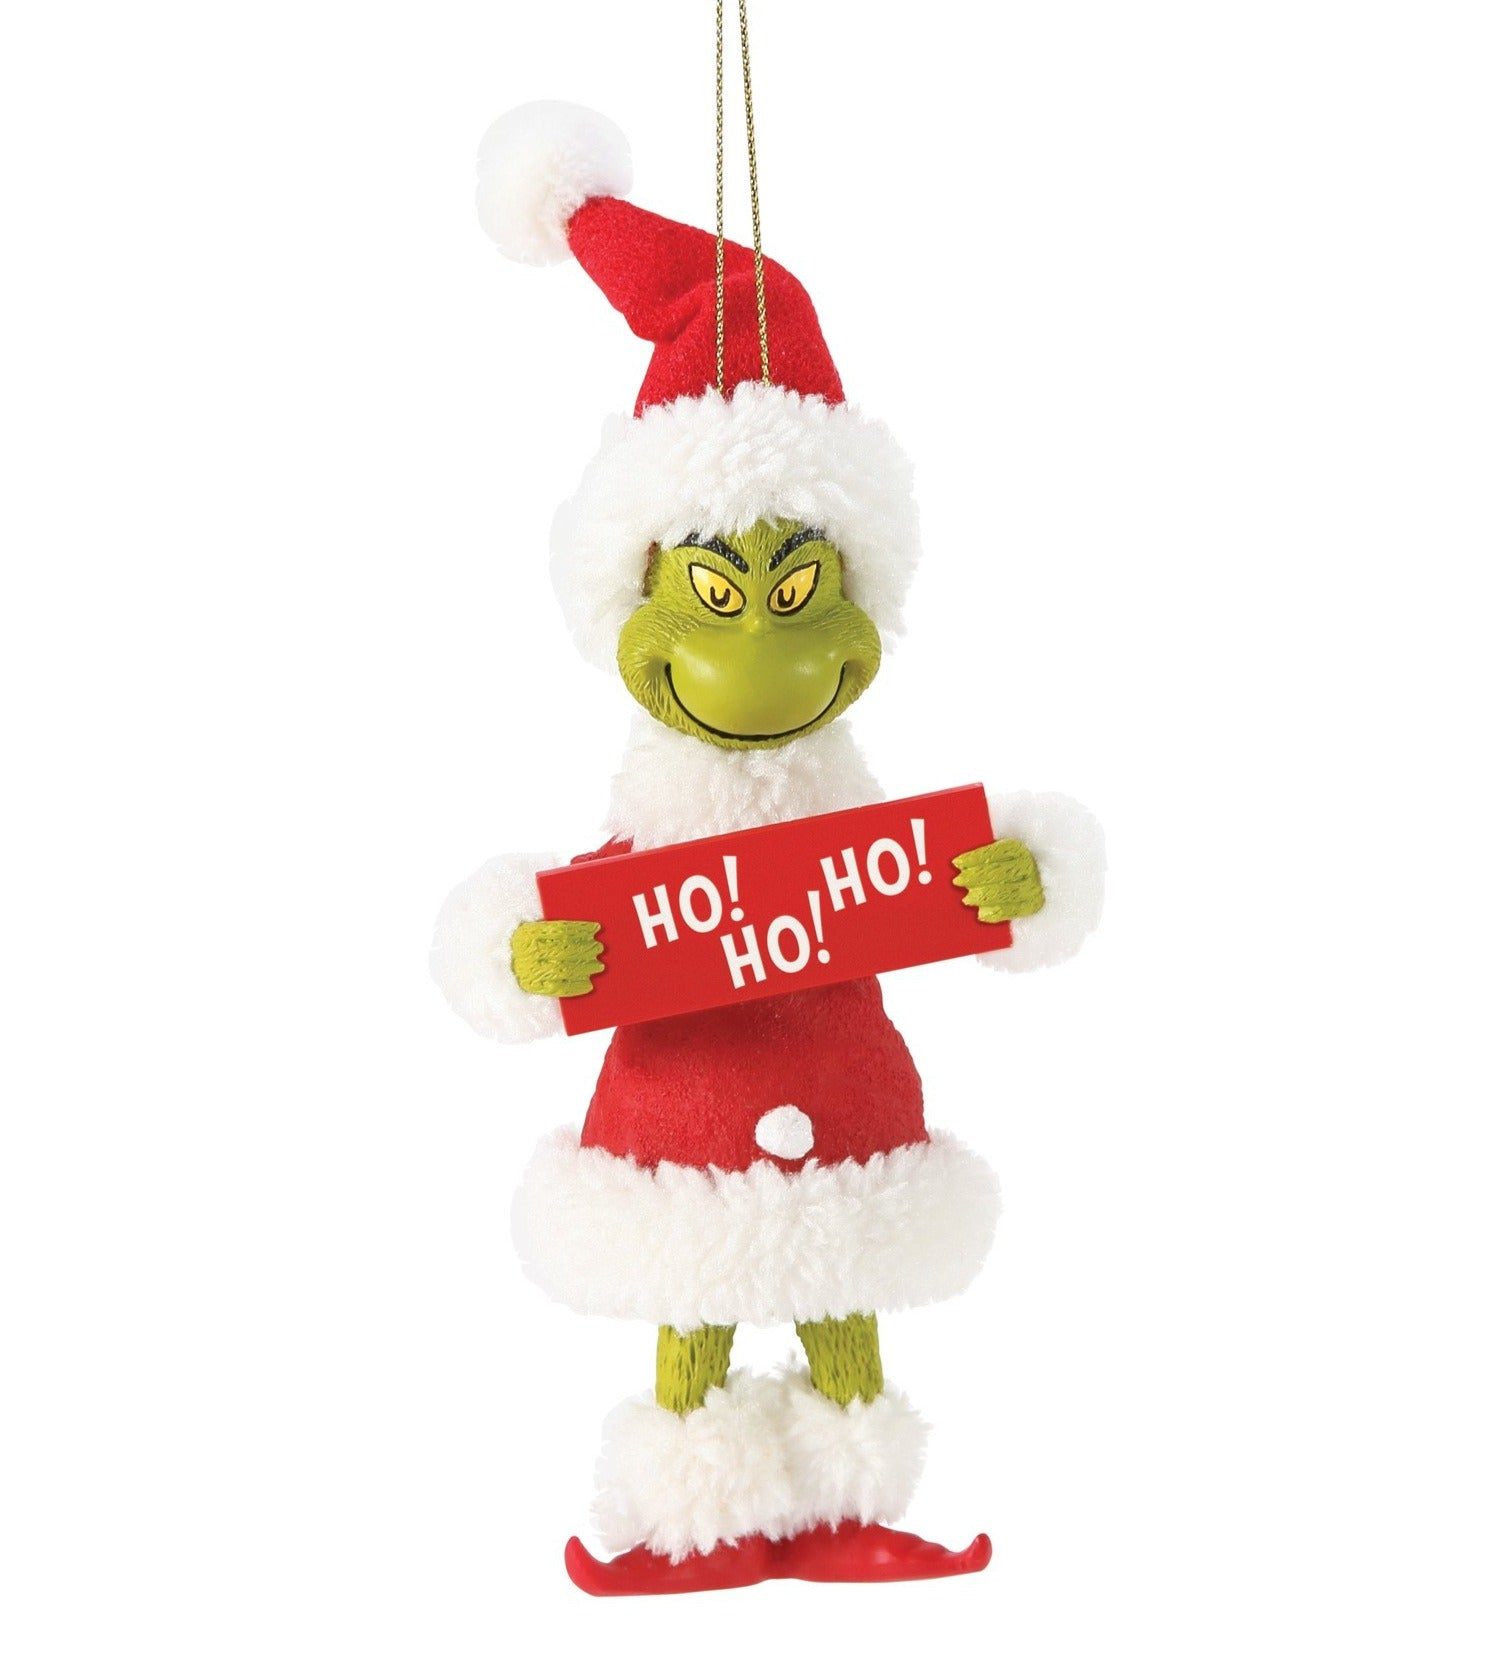 Grinch HO HO HO Ornament